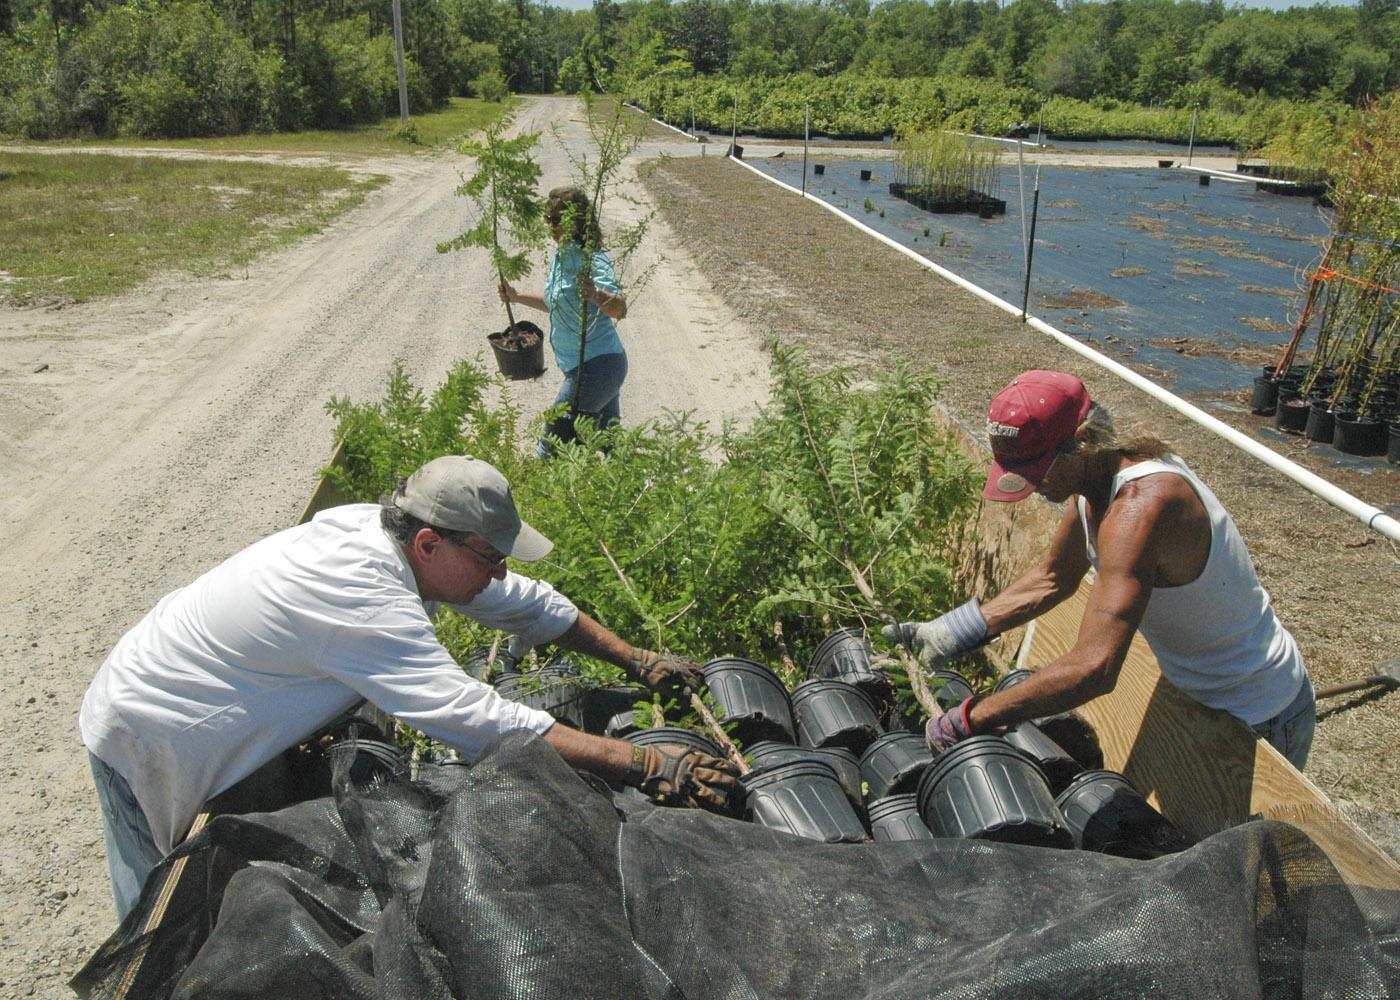 From left, Jim Kelly, restoration expert for the Land Trust for the Mississippi Coastal Plain, and Lavell Mitchell, nurseryman, load RPM trees grown at Young's Nursery in Vancleave while Laura Bowie, Land Trust watershed outreach coordinator, carries more over in this April 23 photo. (Photo by Bonnie Coblentz)